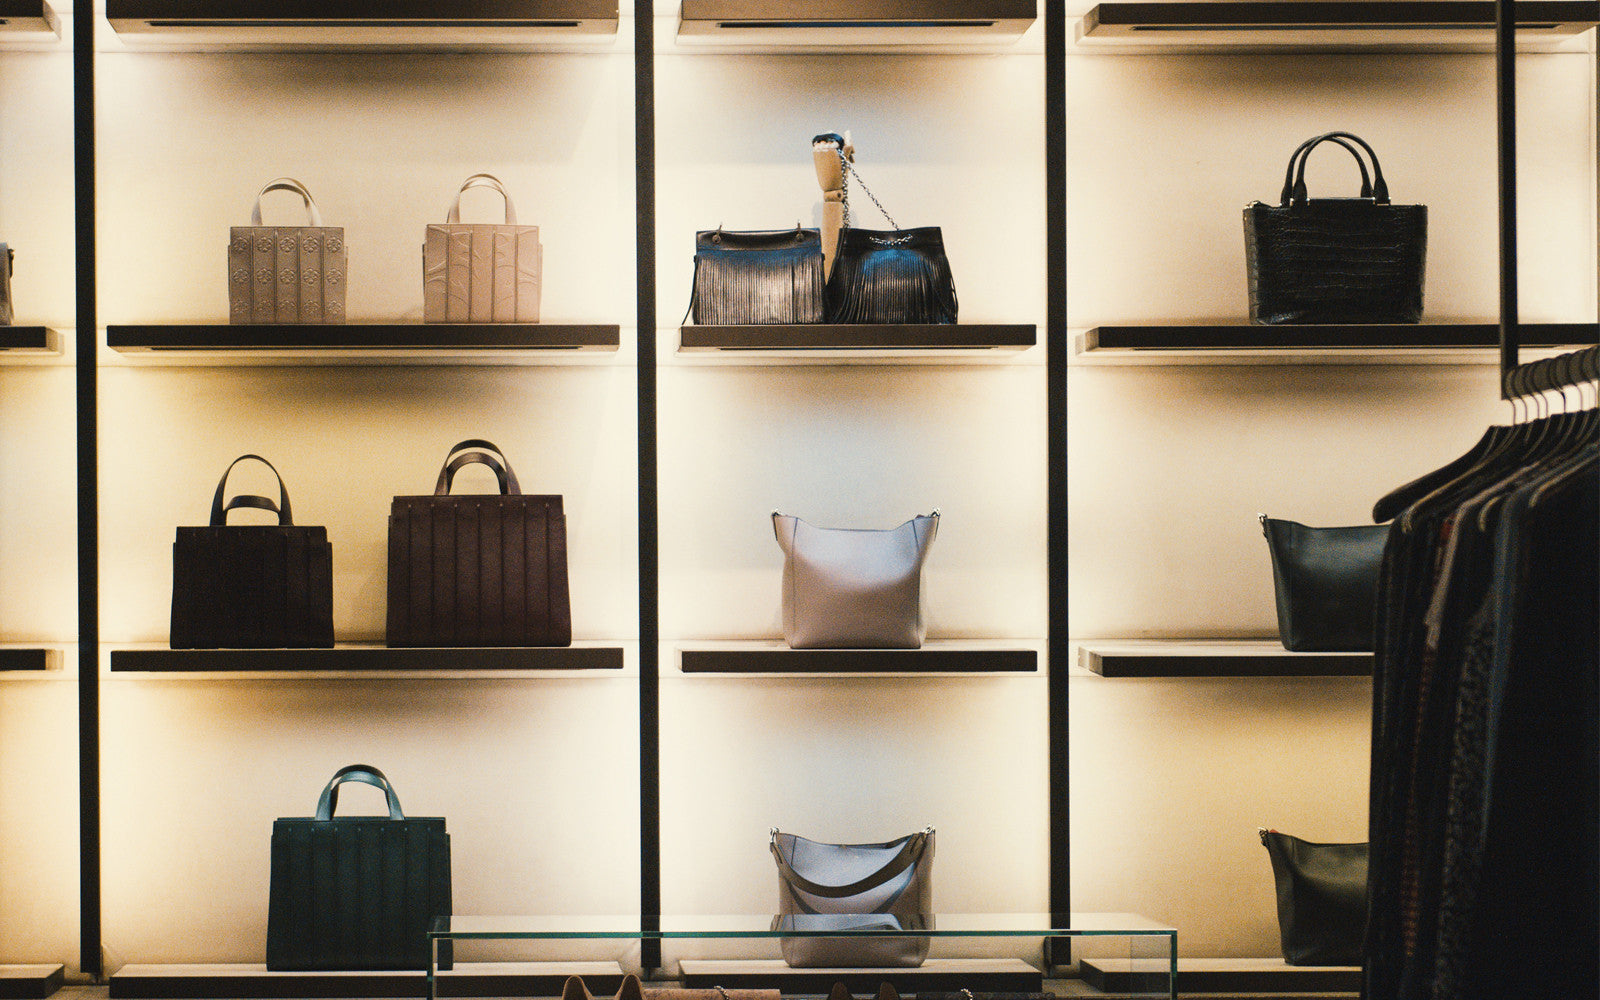 The array of gorgeous handbags